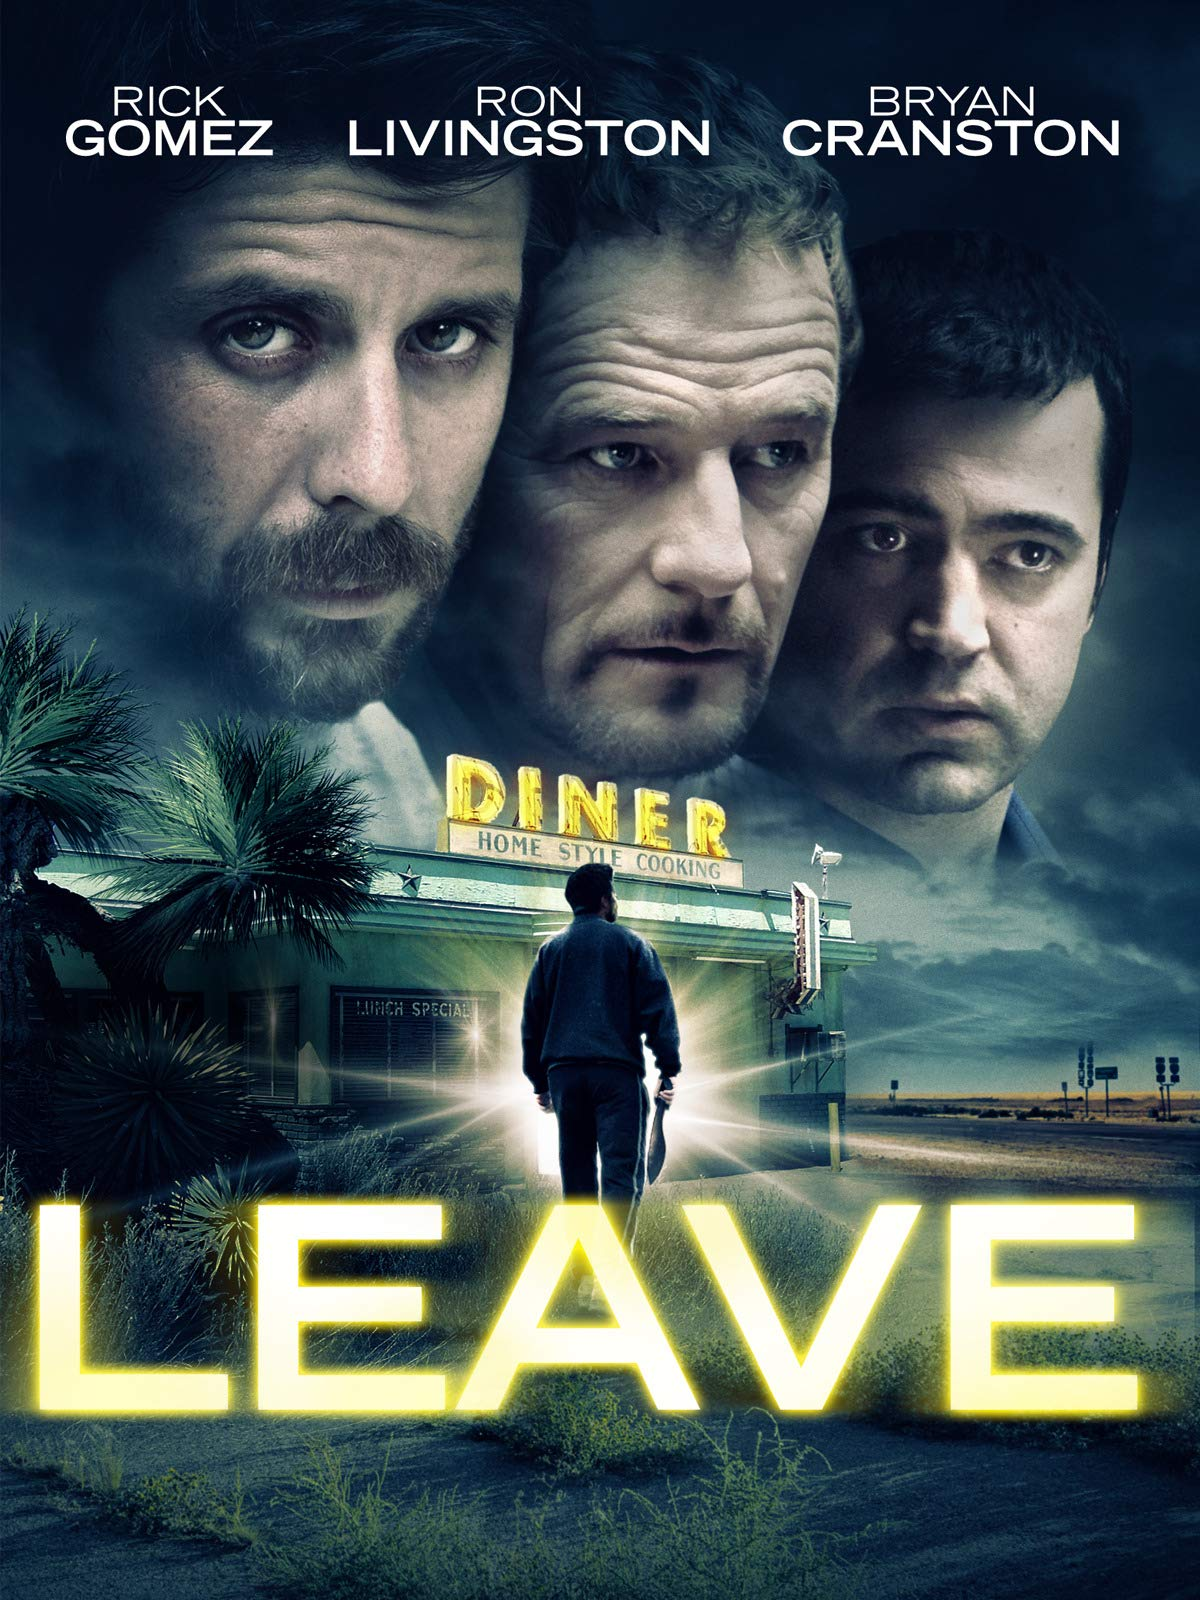 Leave on Amazon Prime Video UK